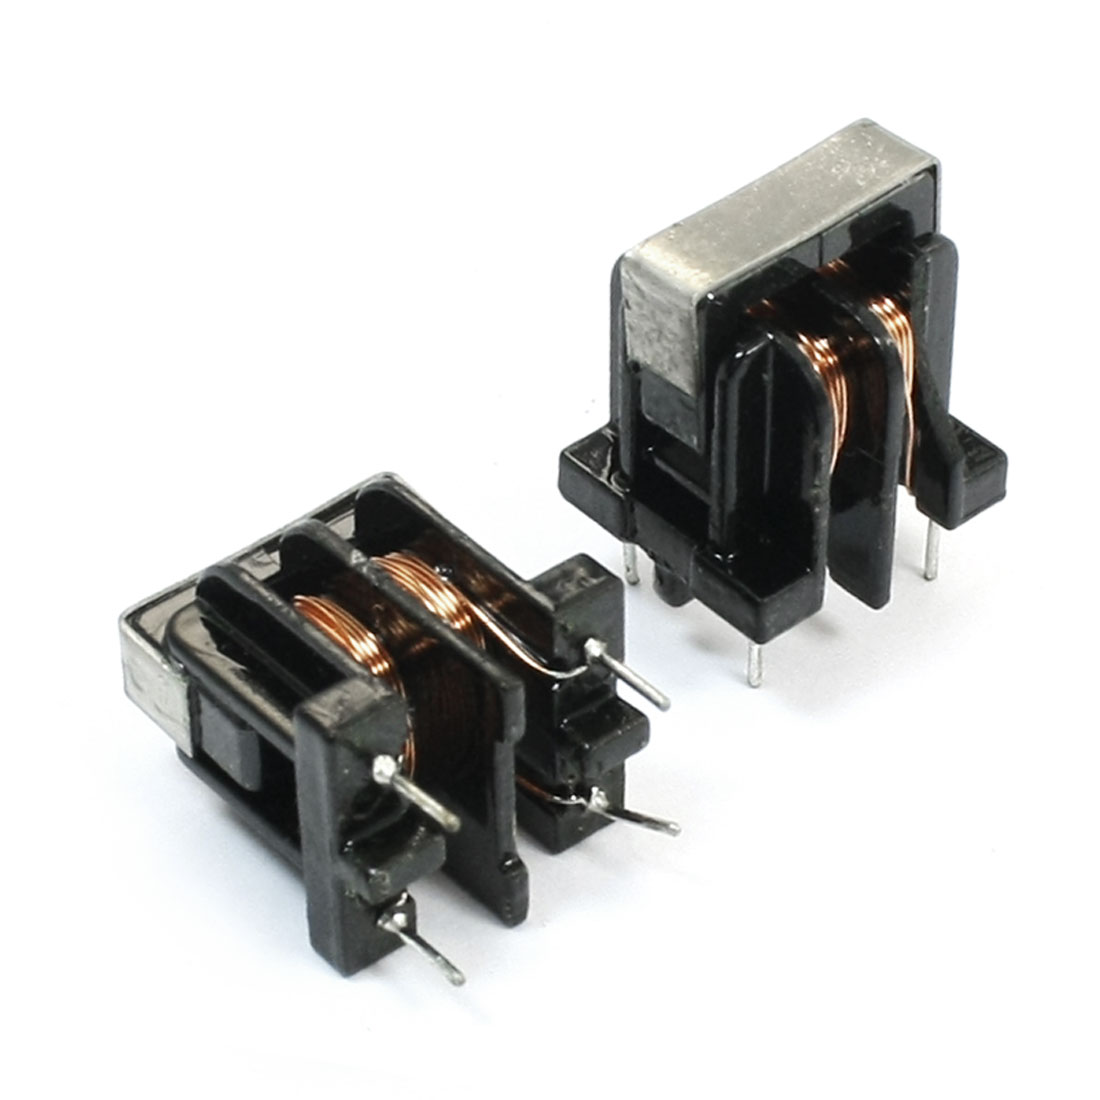 2 Pcs UU10.5 Axial Leads Common Mode Line Filter Inductor